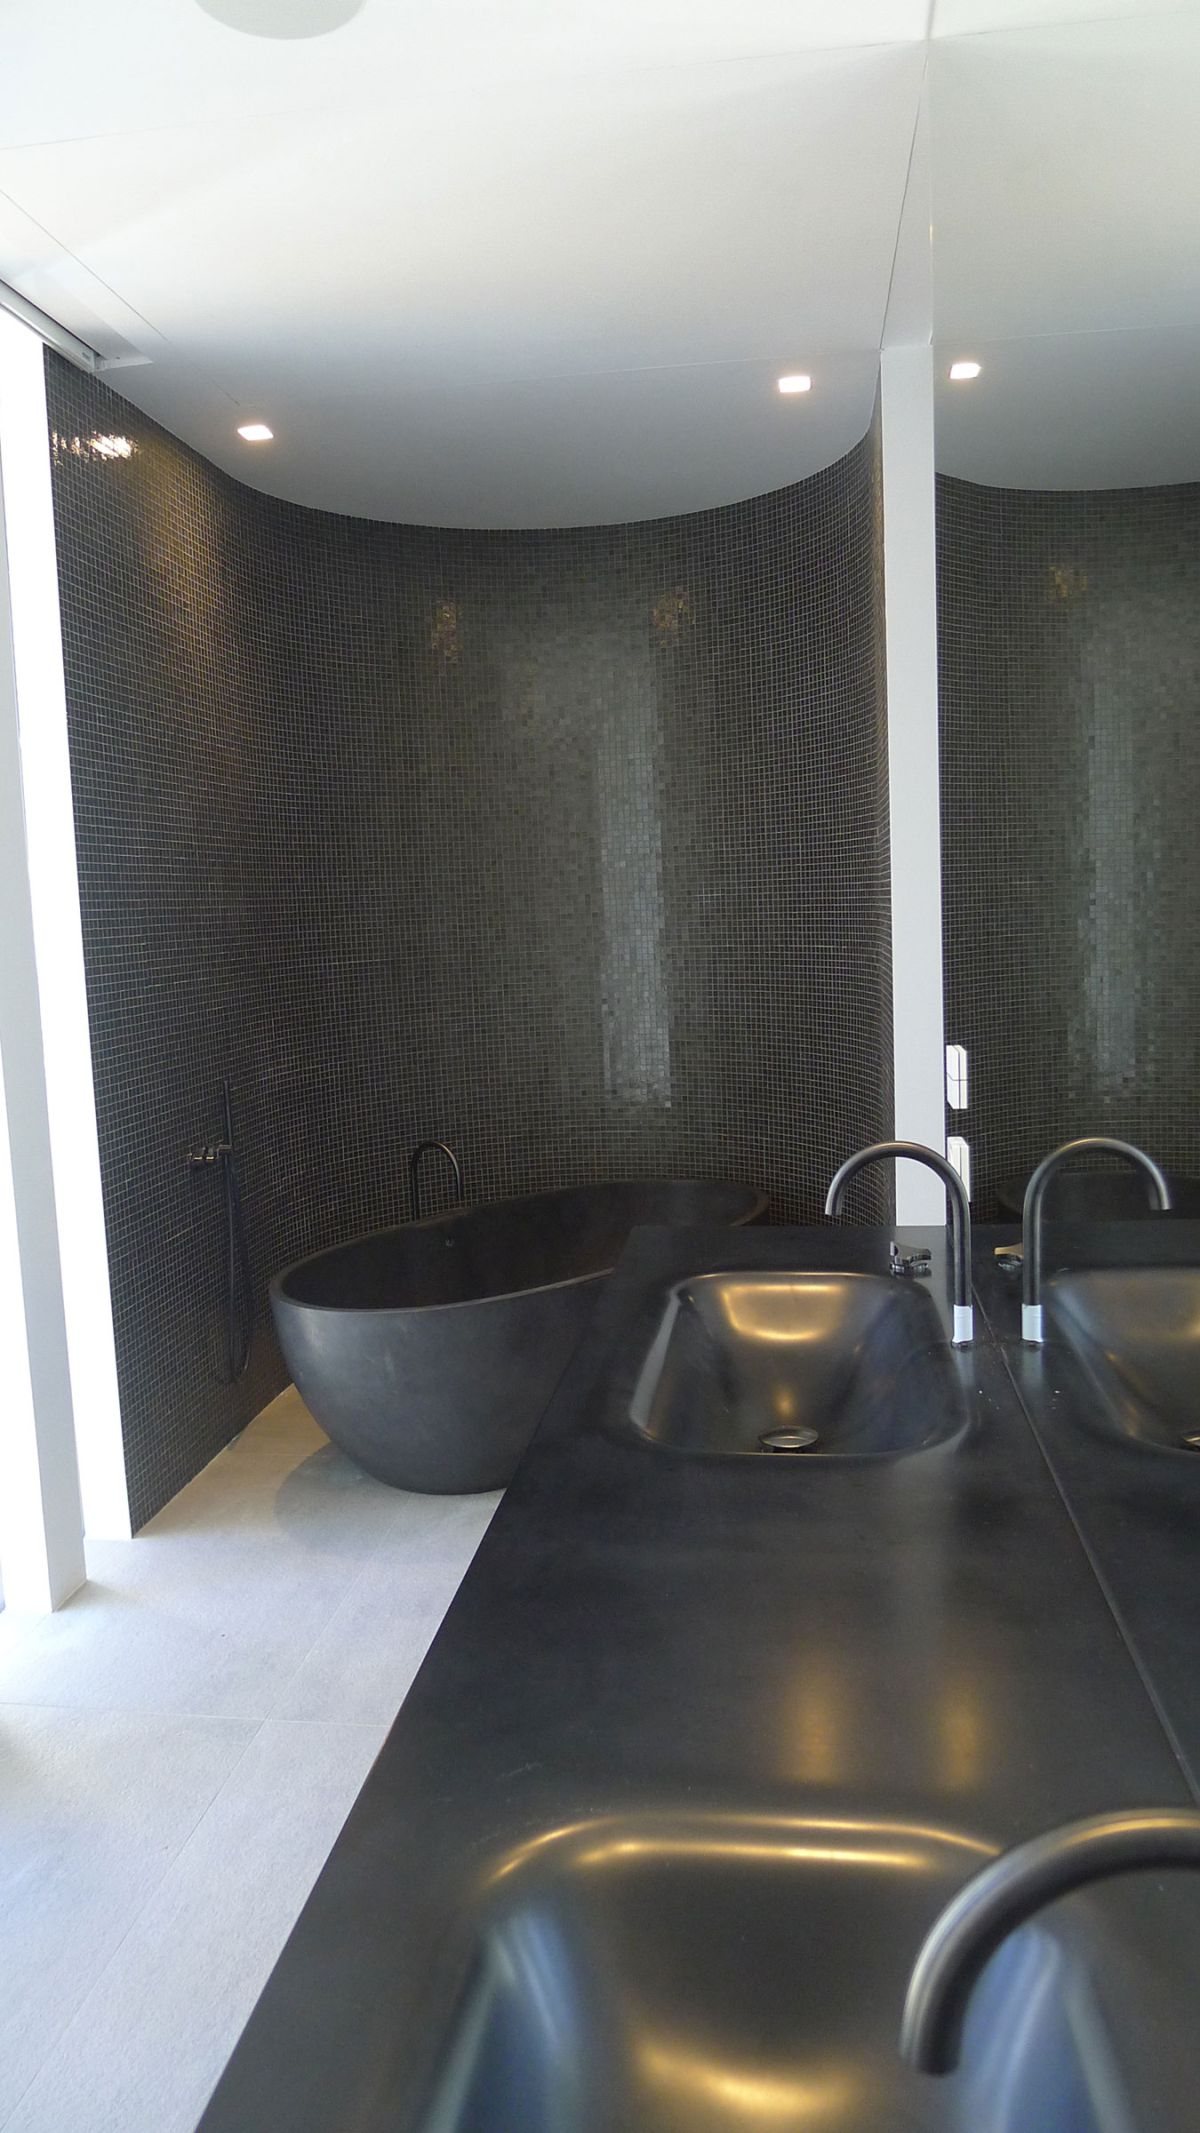 The Cool Blue Villa's luxury bathroom minimalism